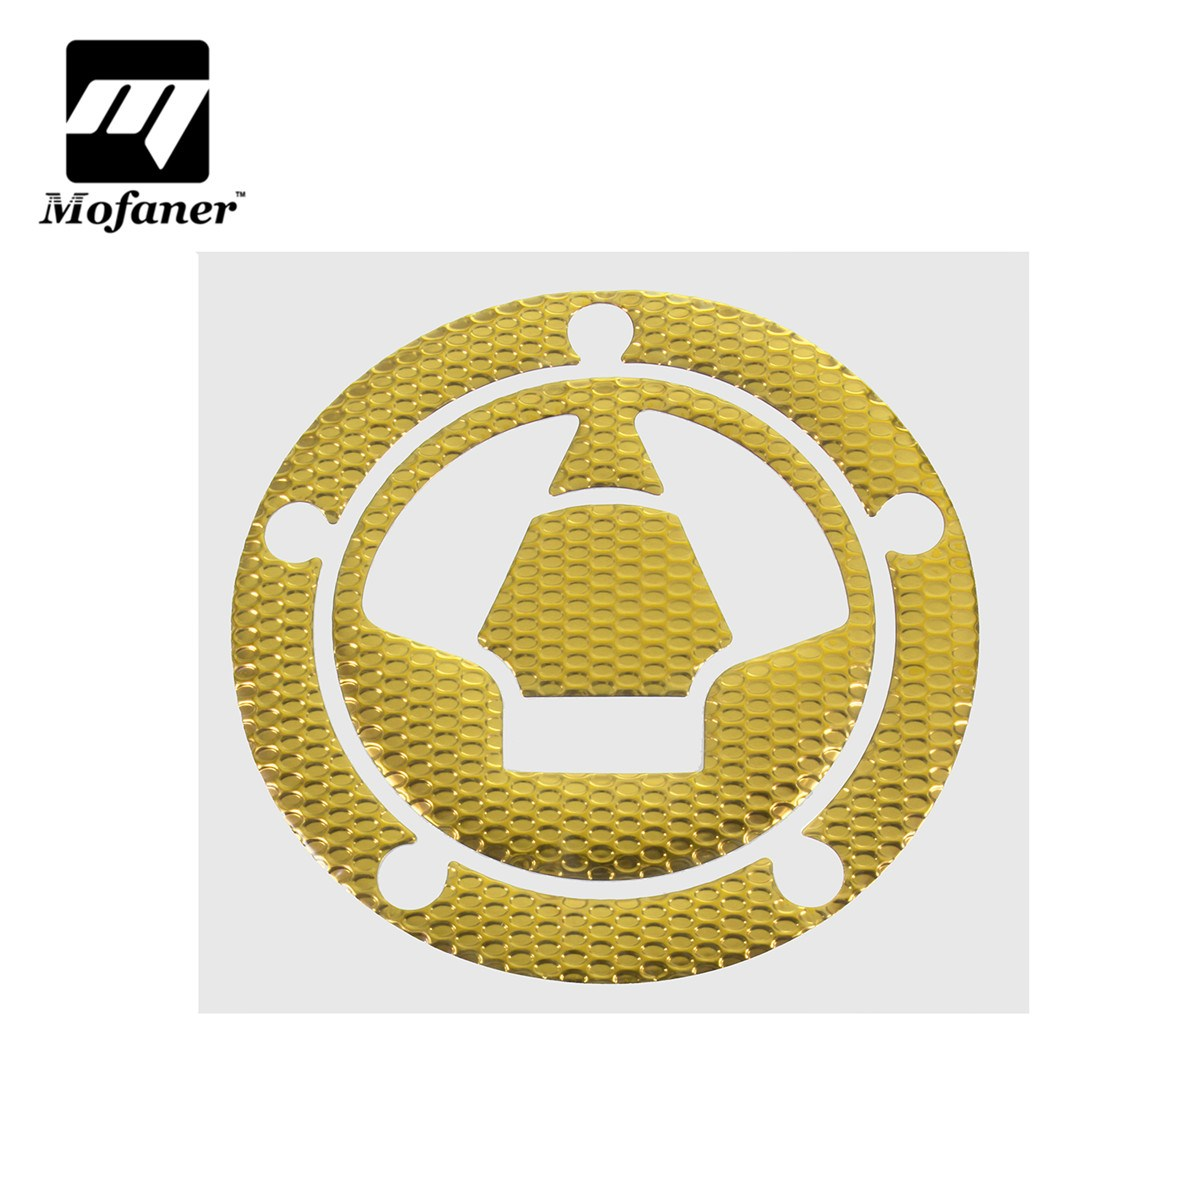 Mofaner Motorcycle Sticker Gas Fuel Oil Tank Pad 3D Stickers Protector Cover Decals For Kawasaki ZX-6R/10R/12R/14R Z750 Z800